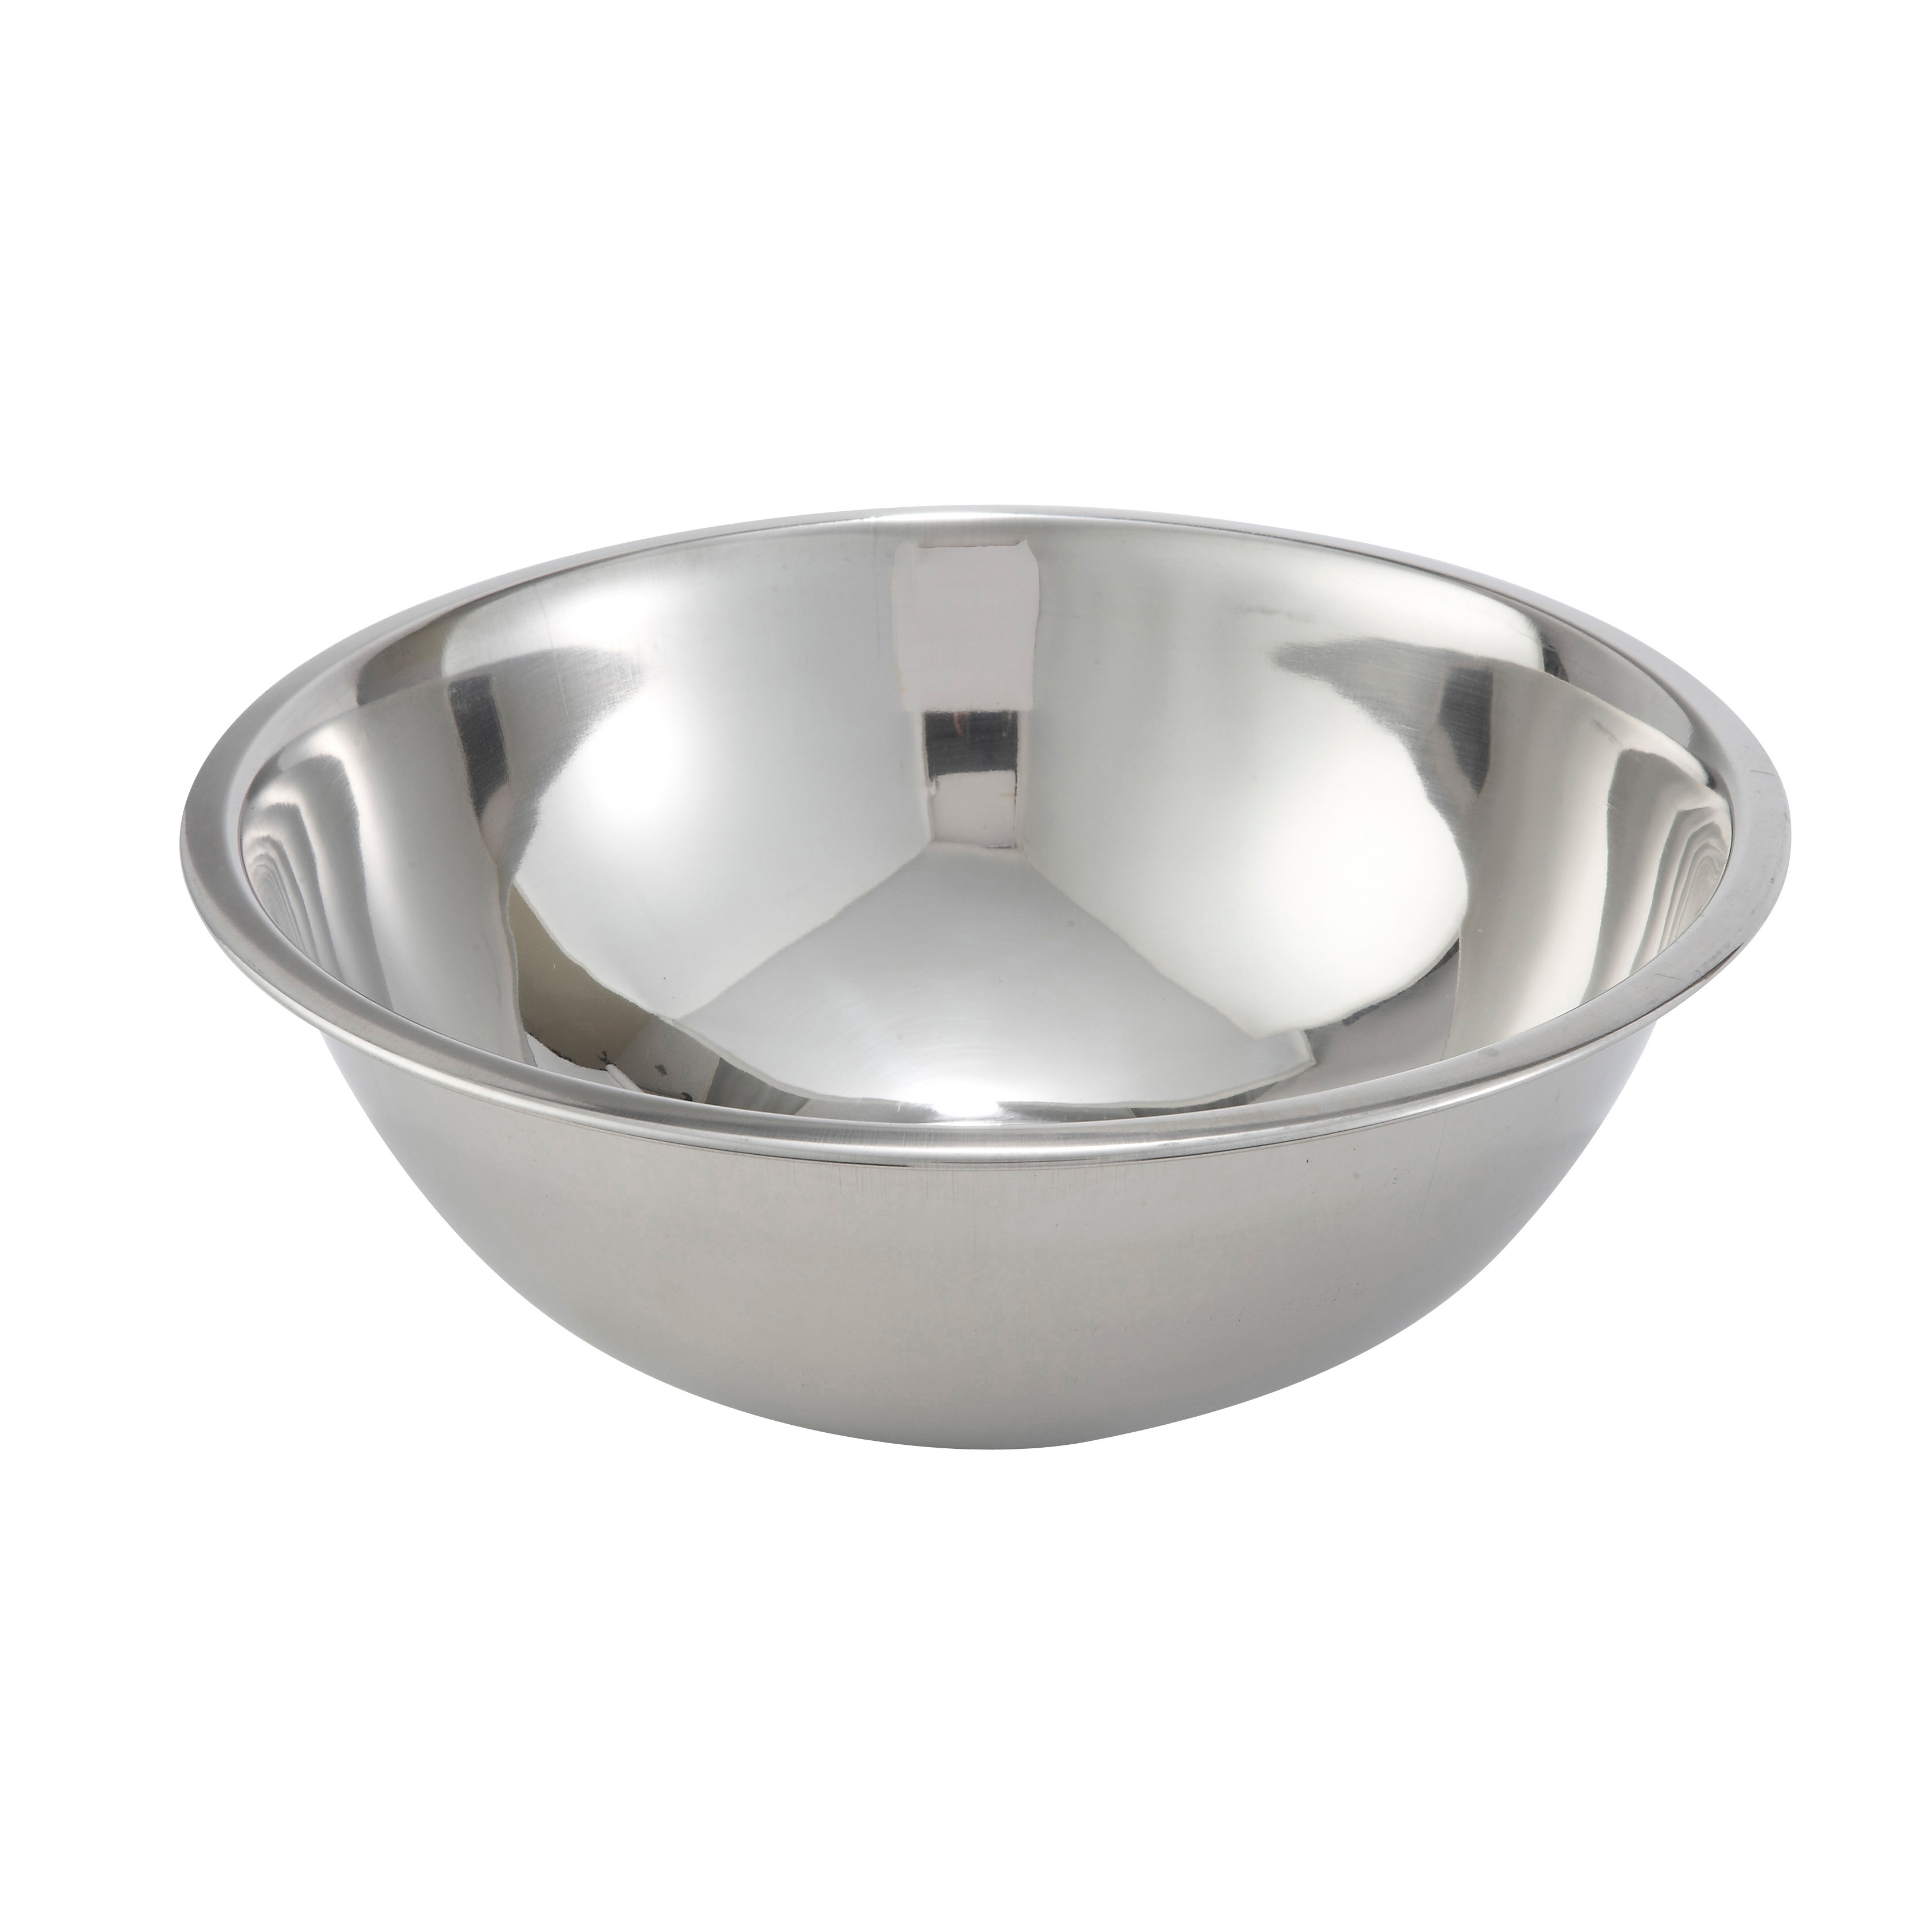 Winco MXBT-800Q mixing bowl, metal